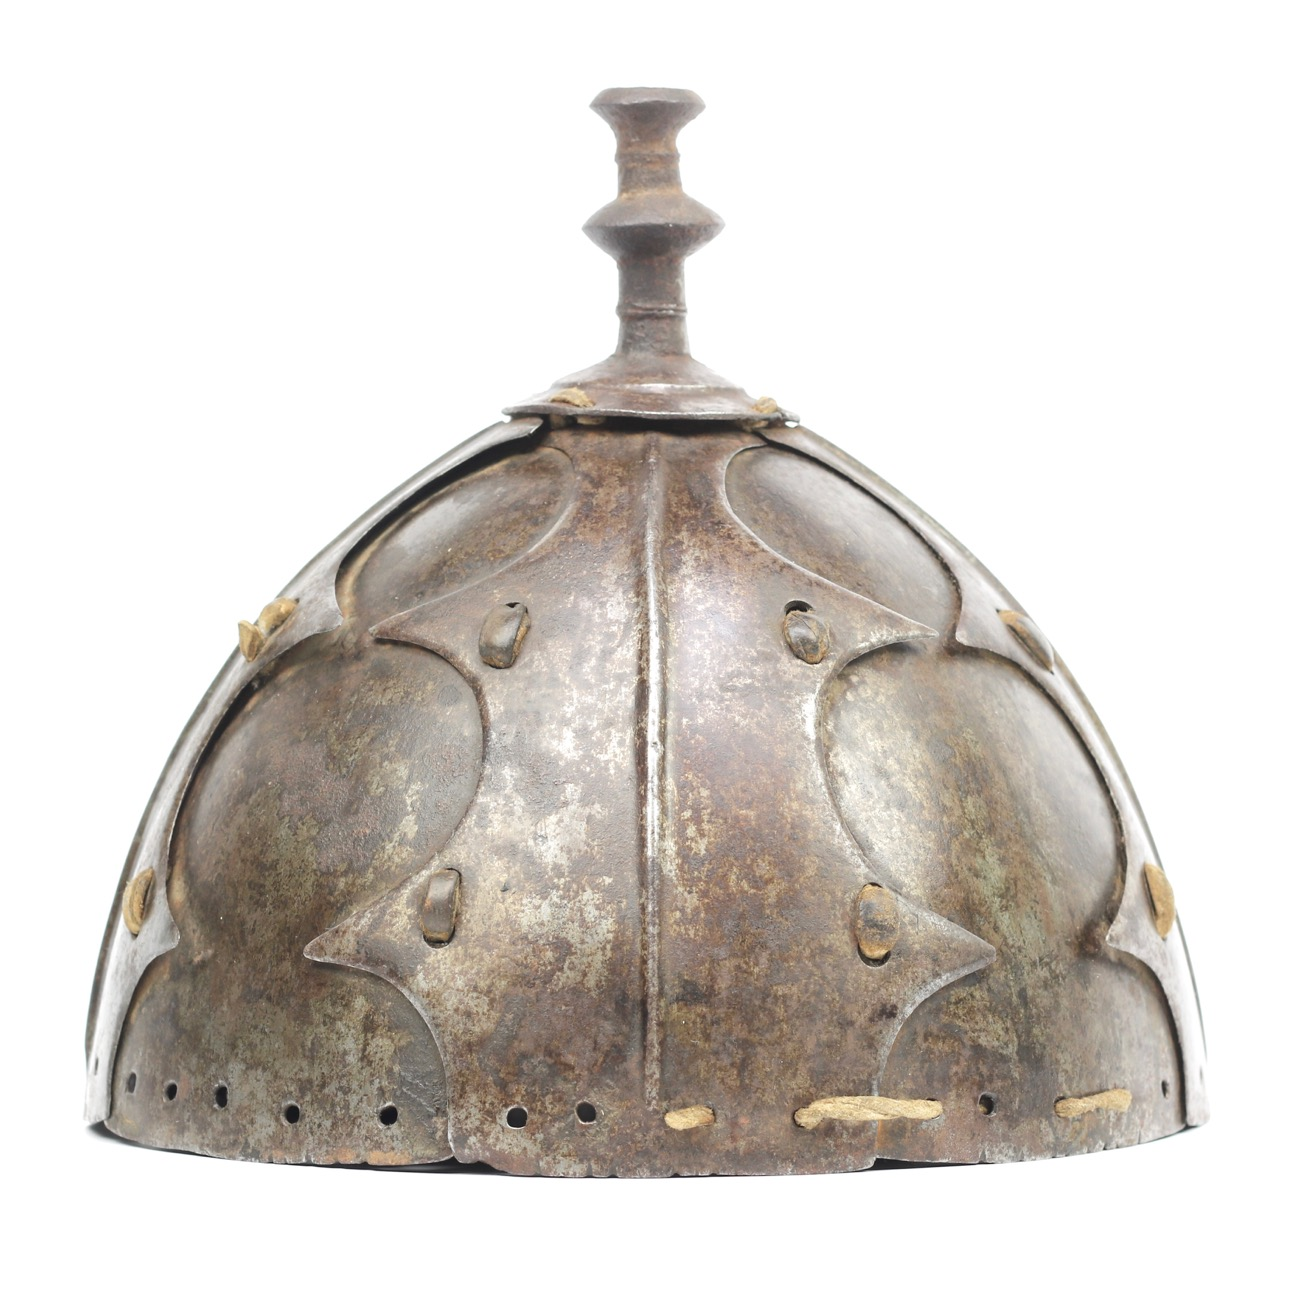 An antique Tibetan eight-plate helmet with partial lamellar armor